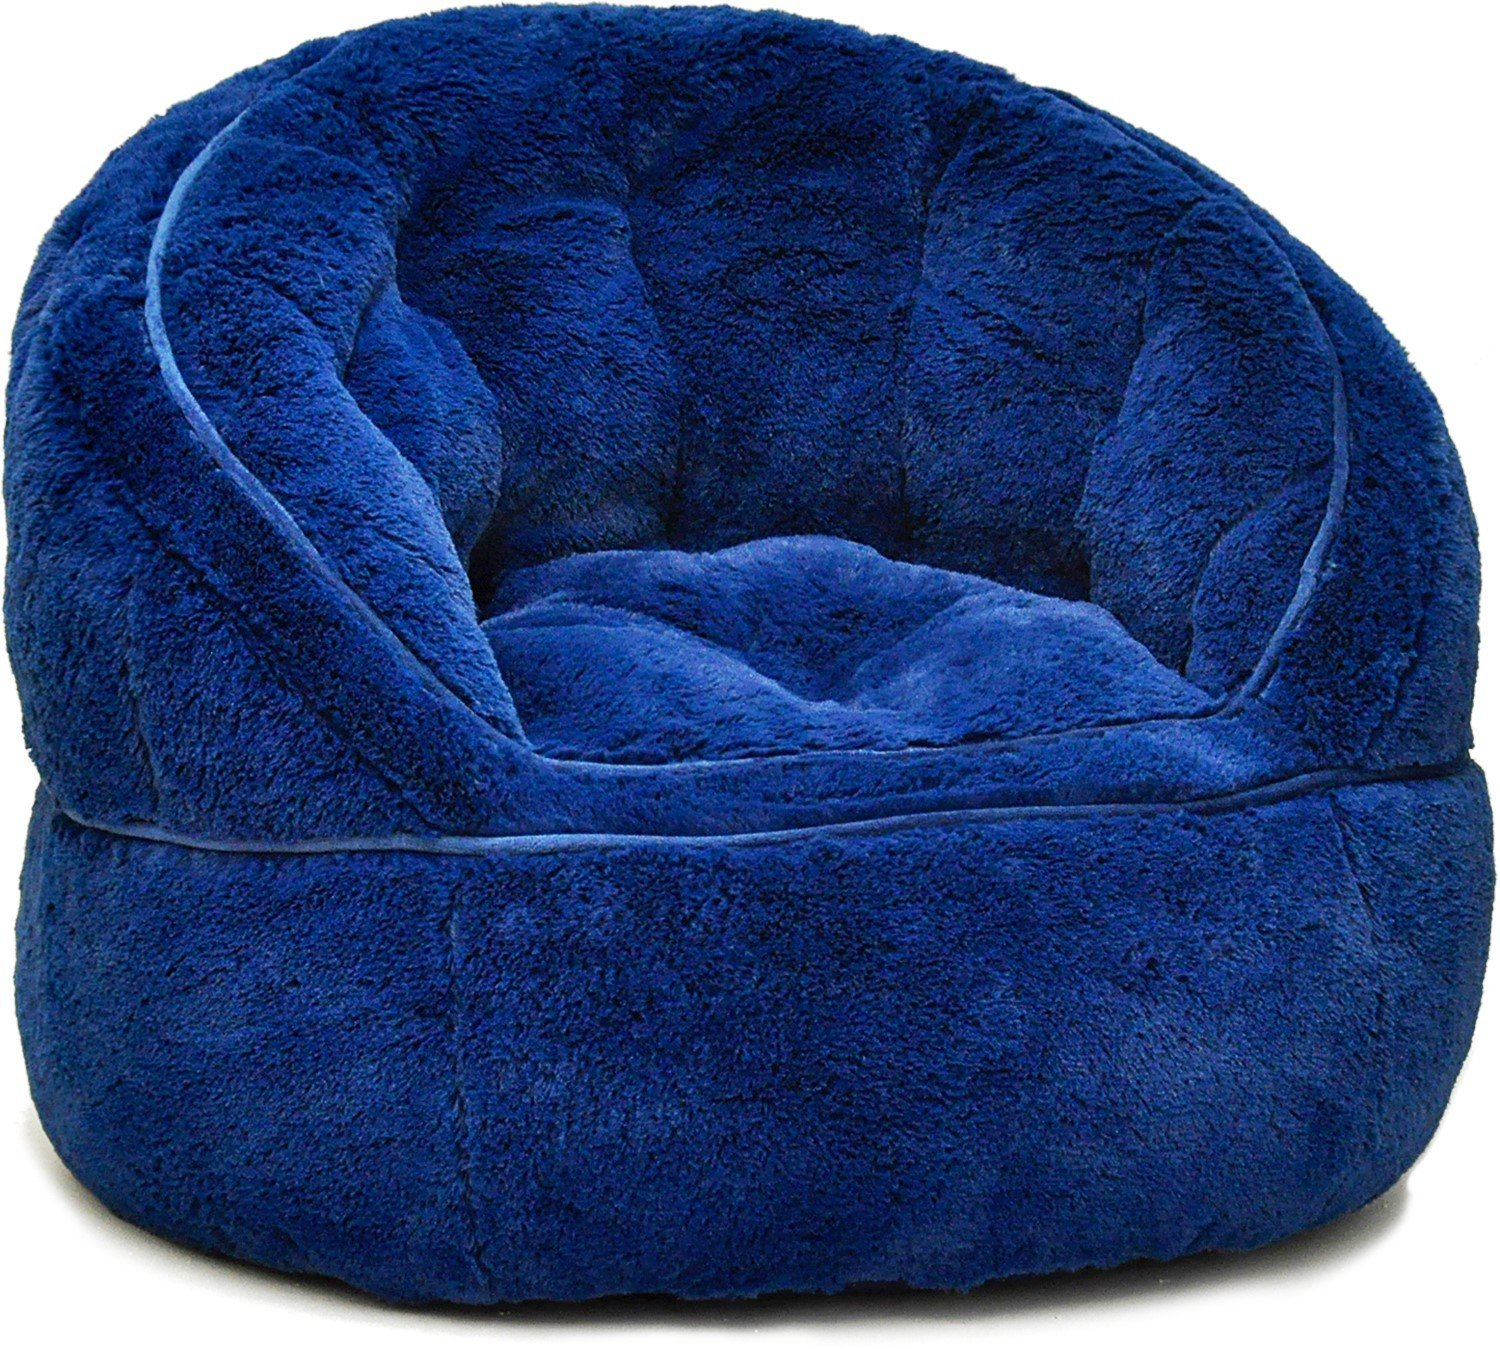 bean bag chair for toddler back pain office cushion heritage kids rabbit fur navy